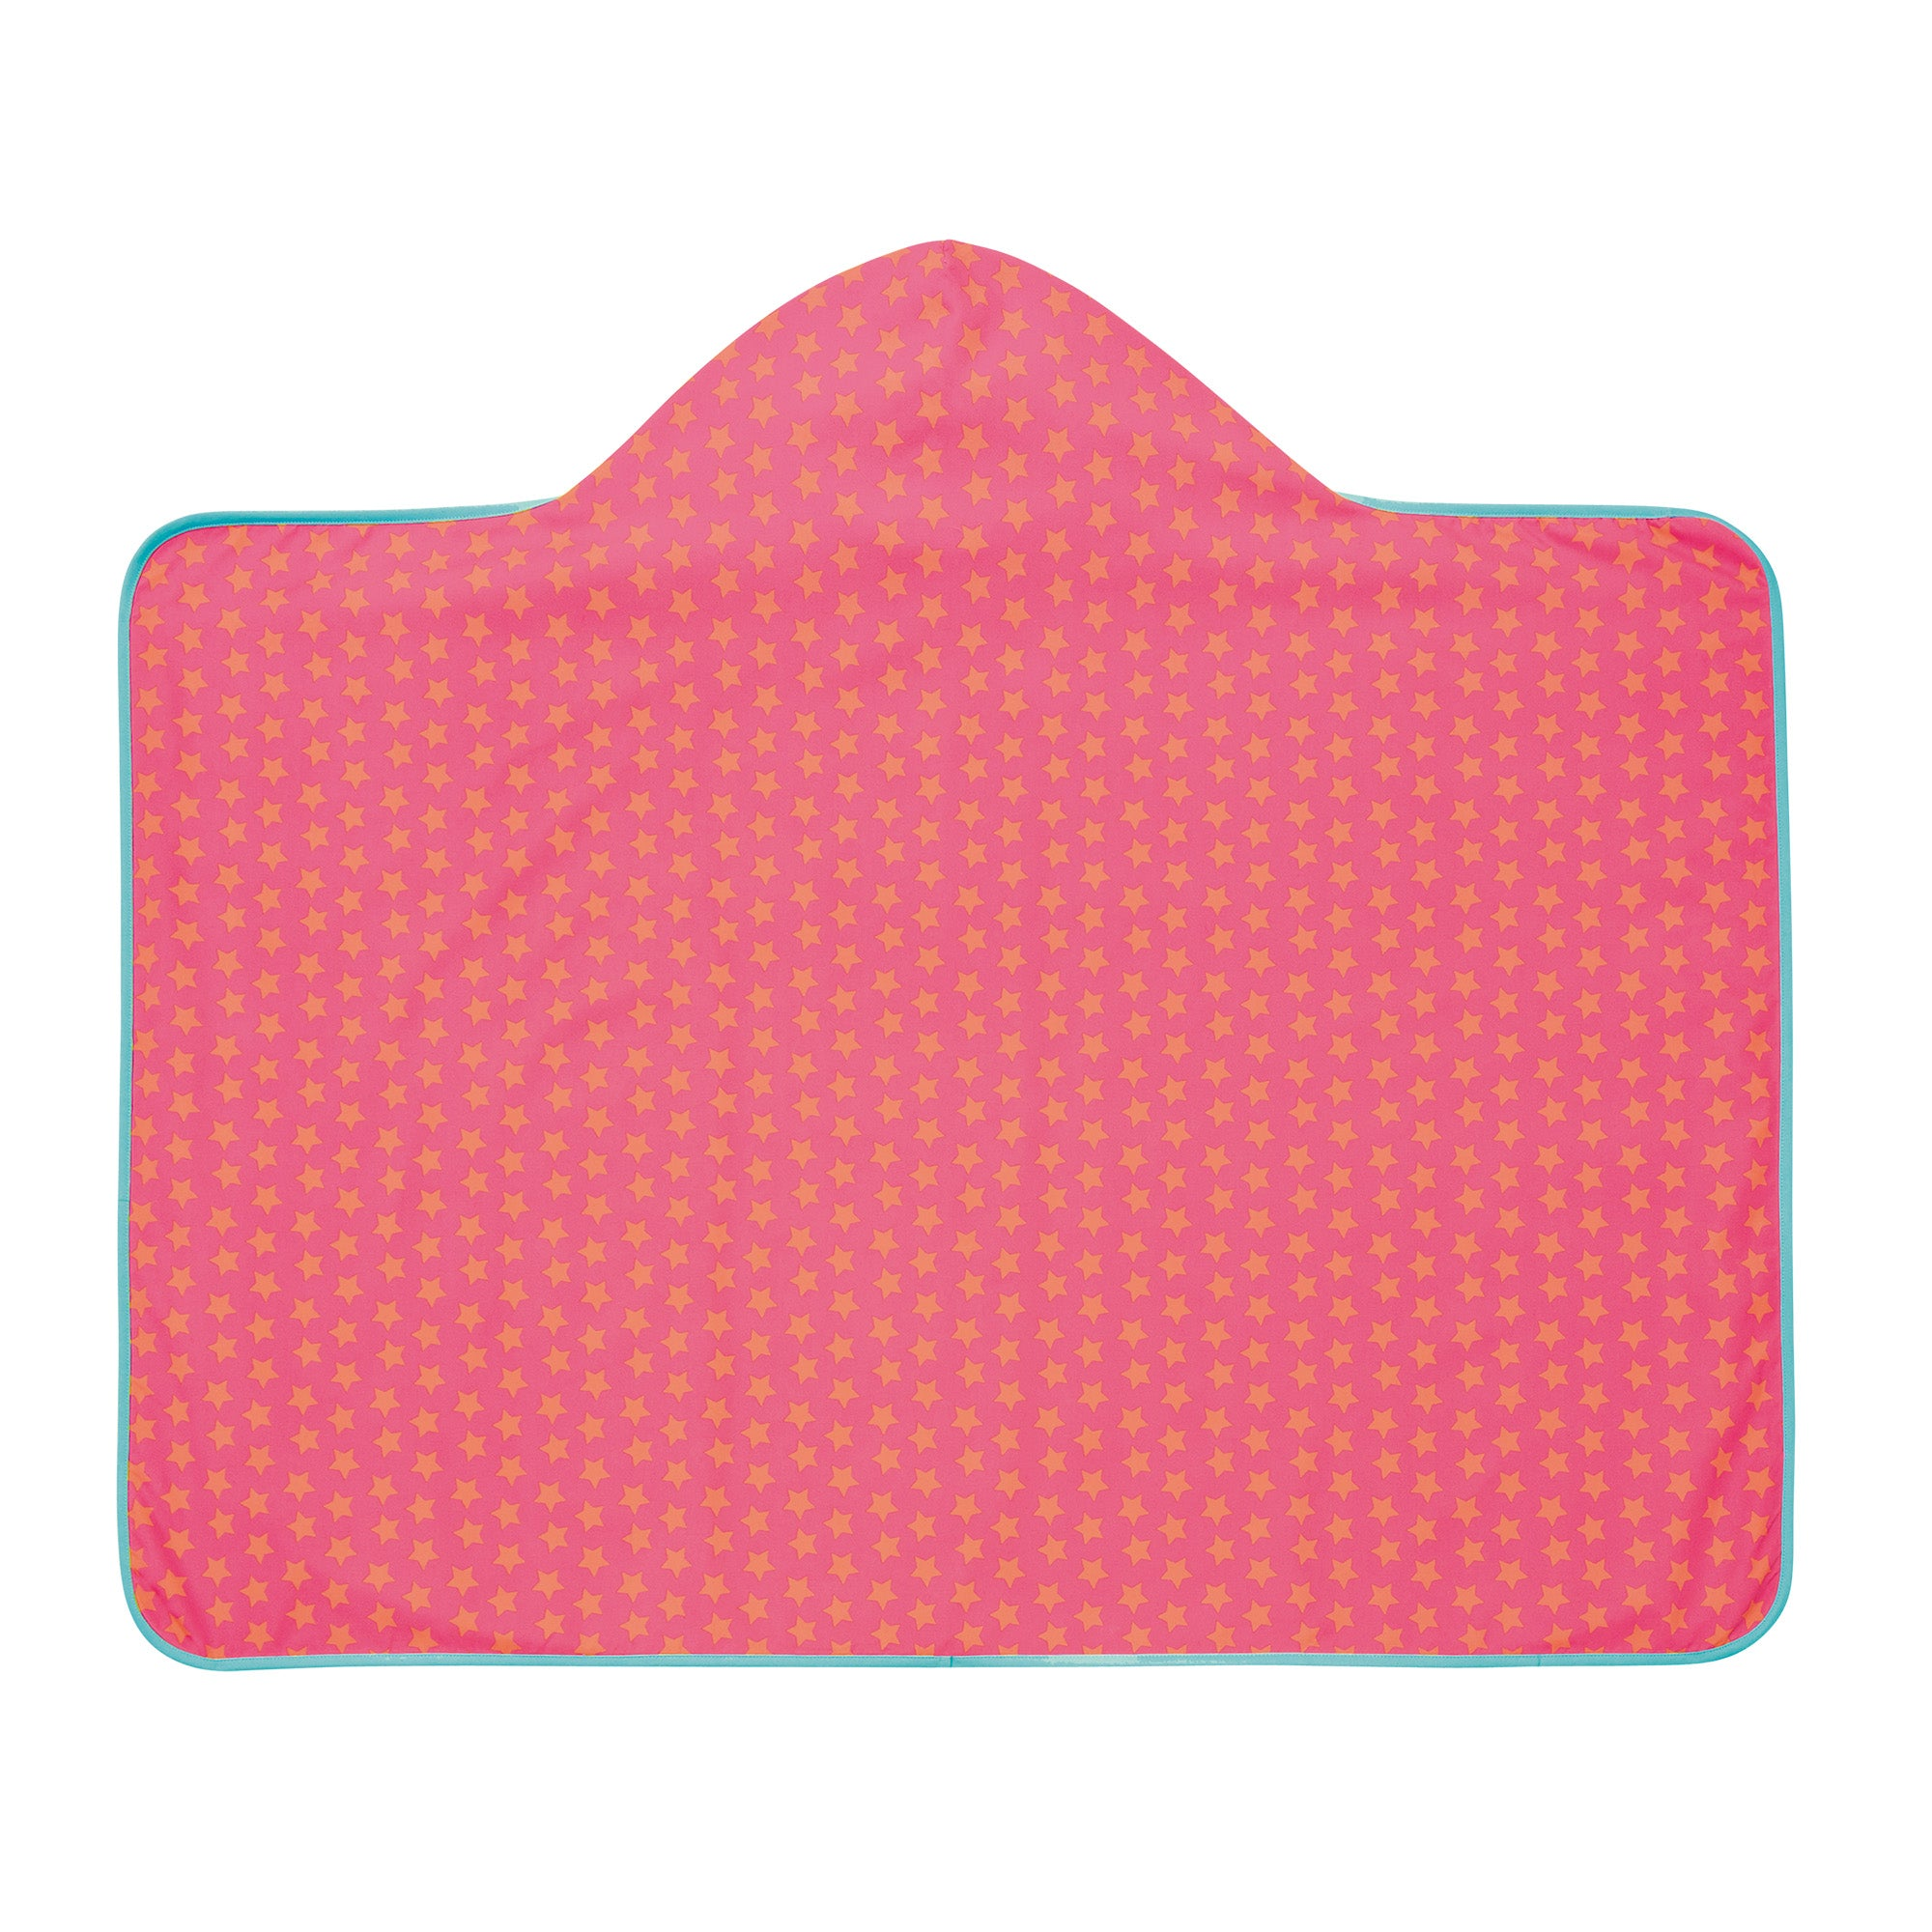 Lassig Girls Hooded Towel - Peach Stars